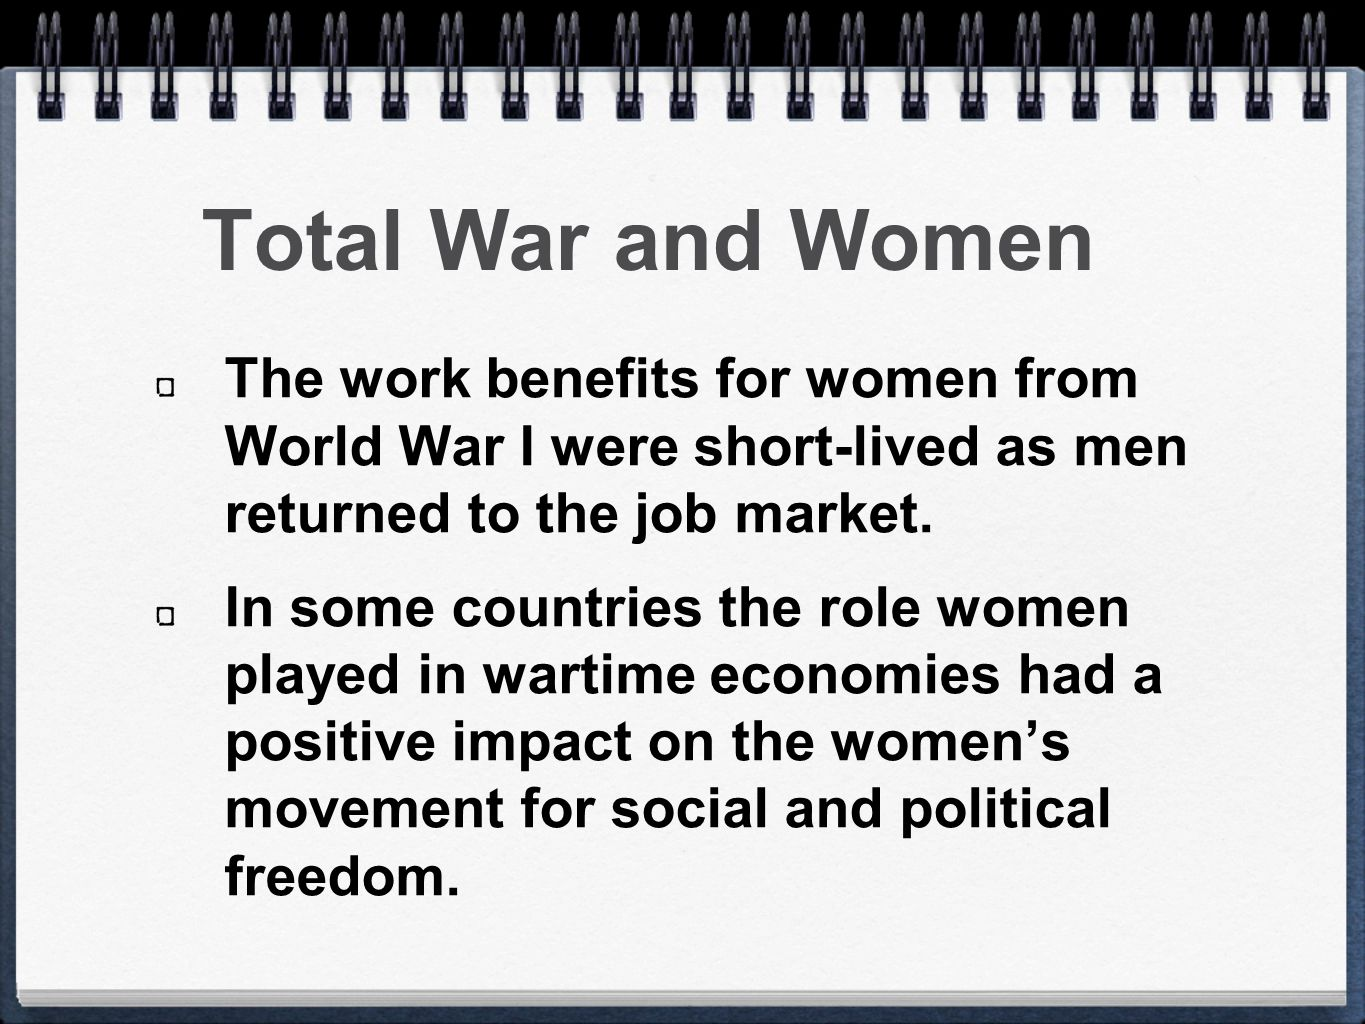 Total War and Women The work benefits for women from World War I were short-lived as men returned to the job market.